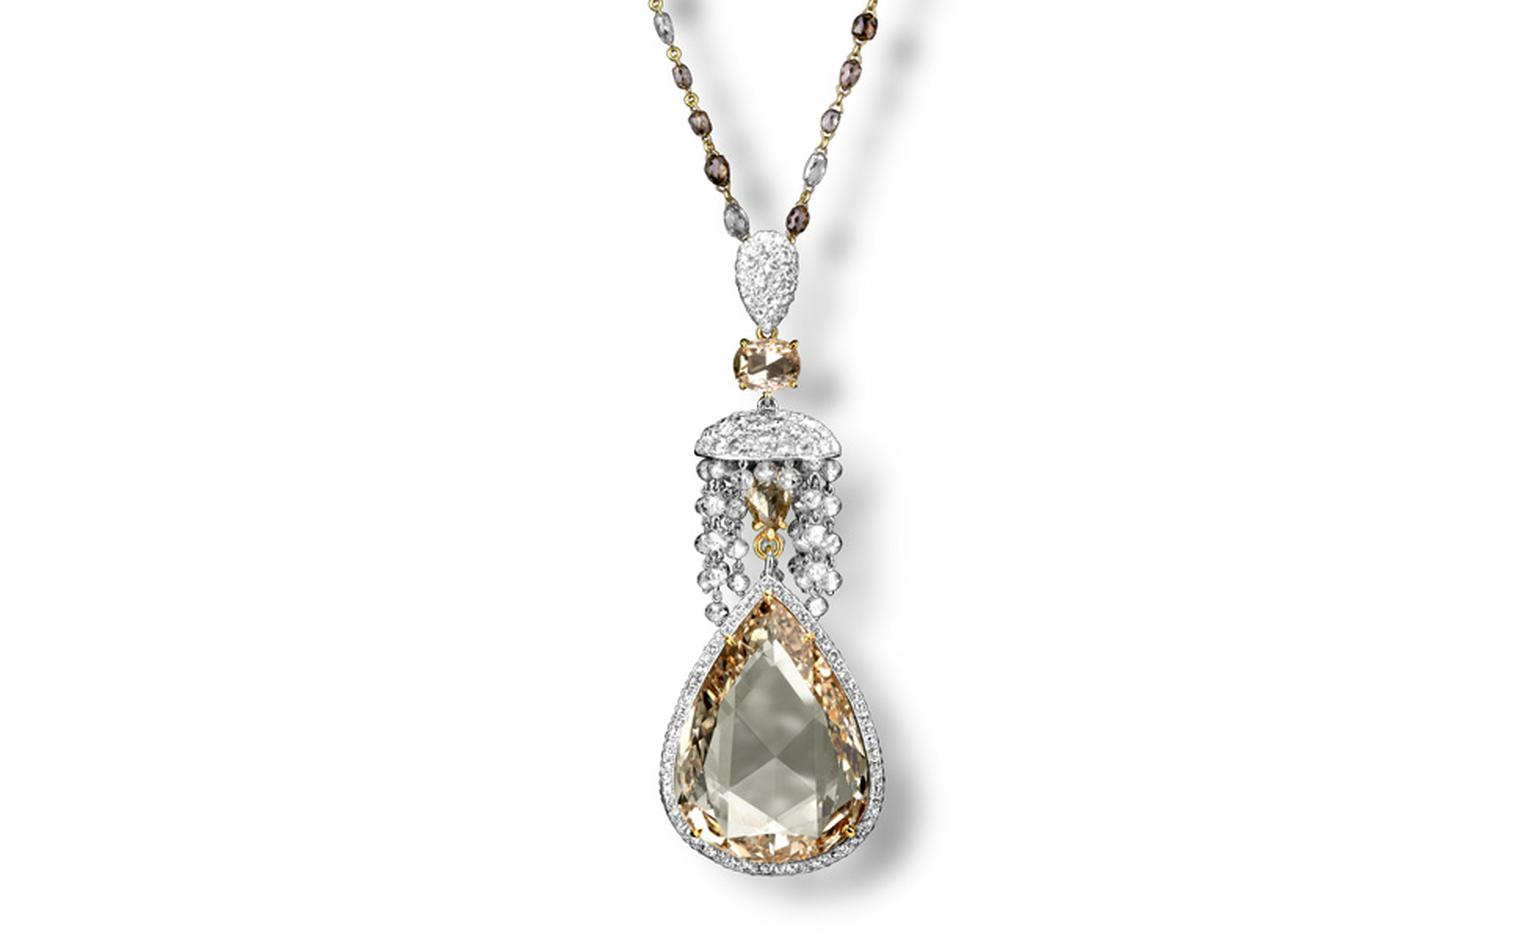 This yellow diamond teardrop pendant shows the remarkable quality of Carnet's stones.